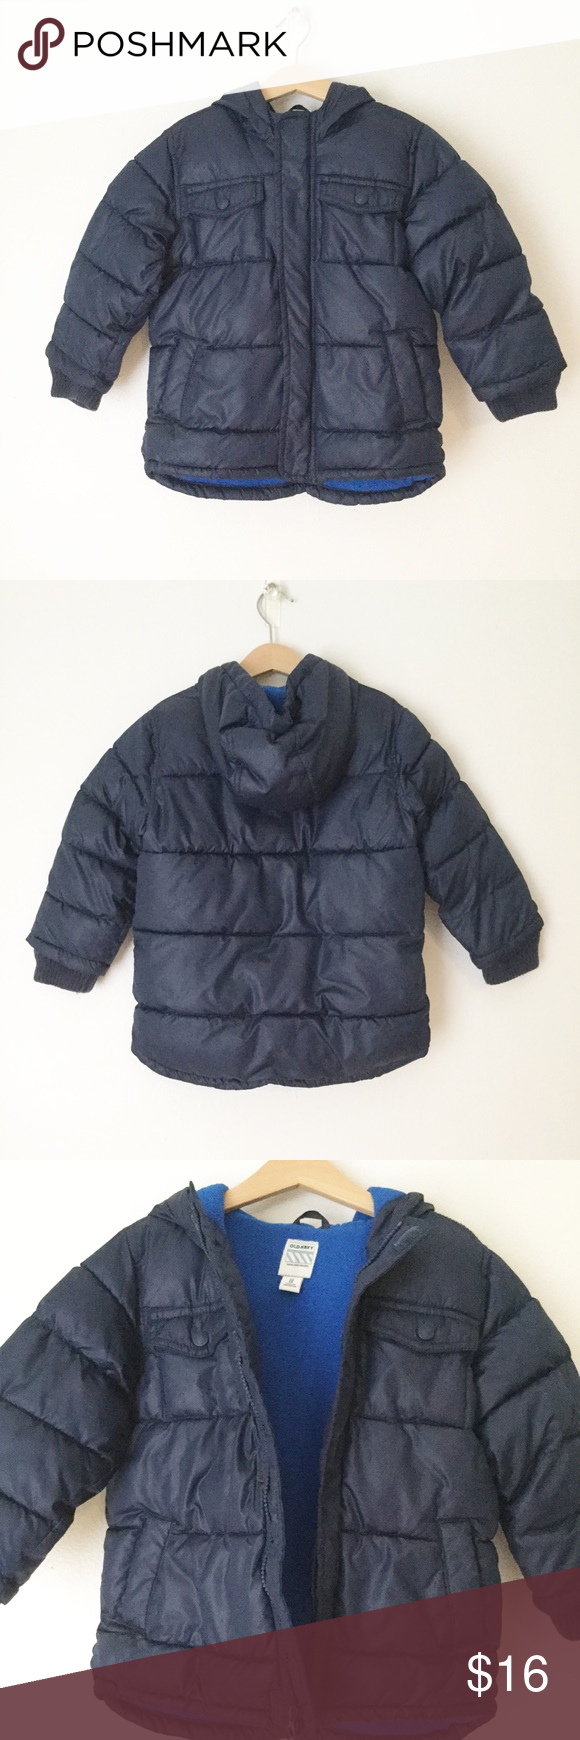 Old Navy Blue Puffer Jacket Great Condition Zip Front Puffer Jacket With Hood Old Navy Jackets Coats Puffers Blue Puffer Jacket Puffer Jackets Jackets [ 1740 x 580 Pixel ]